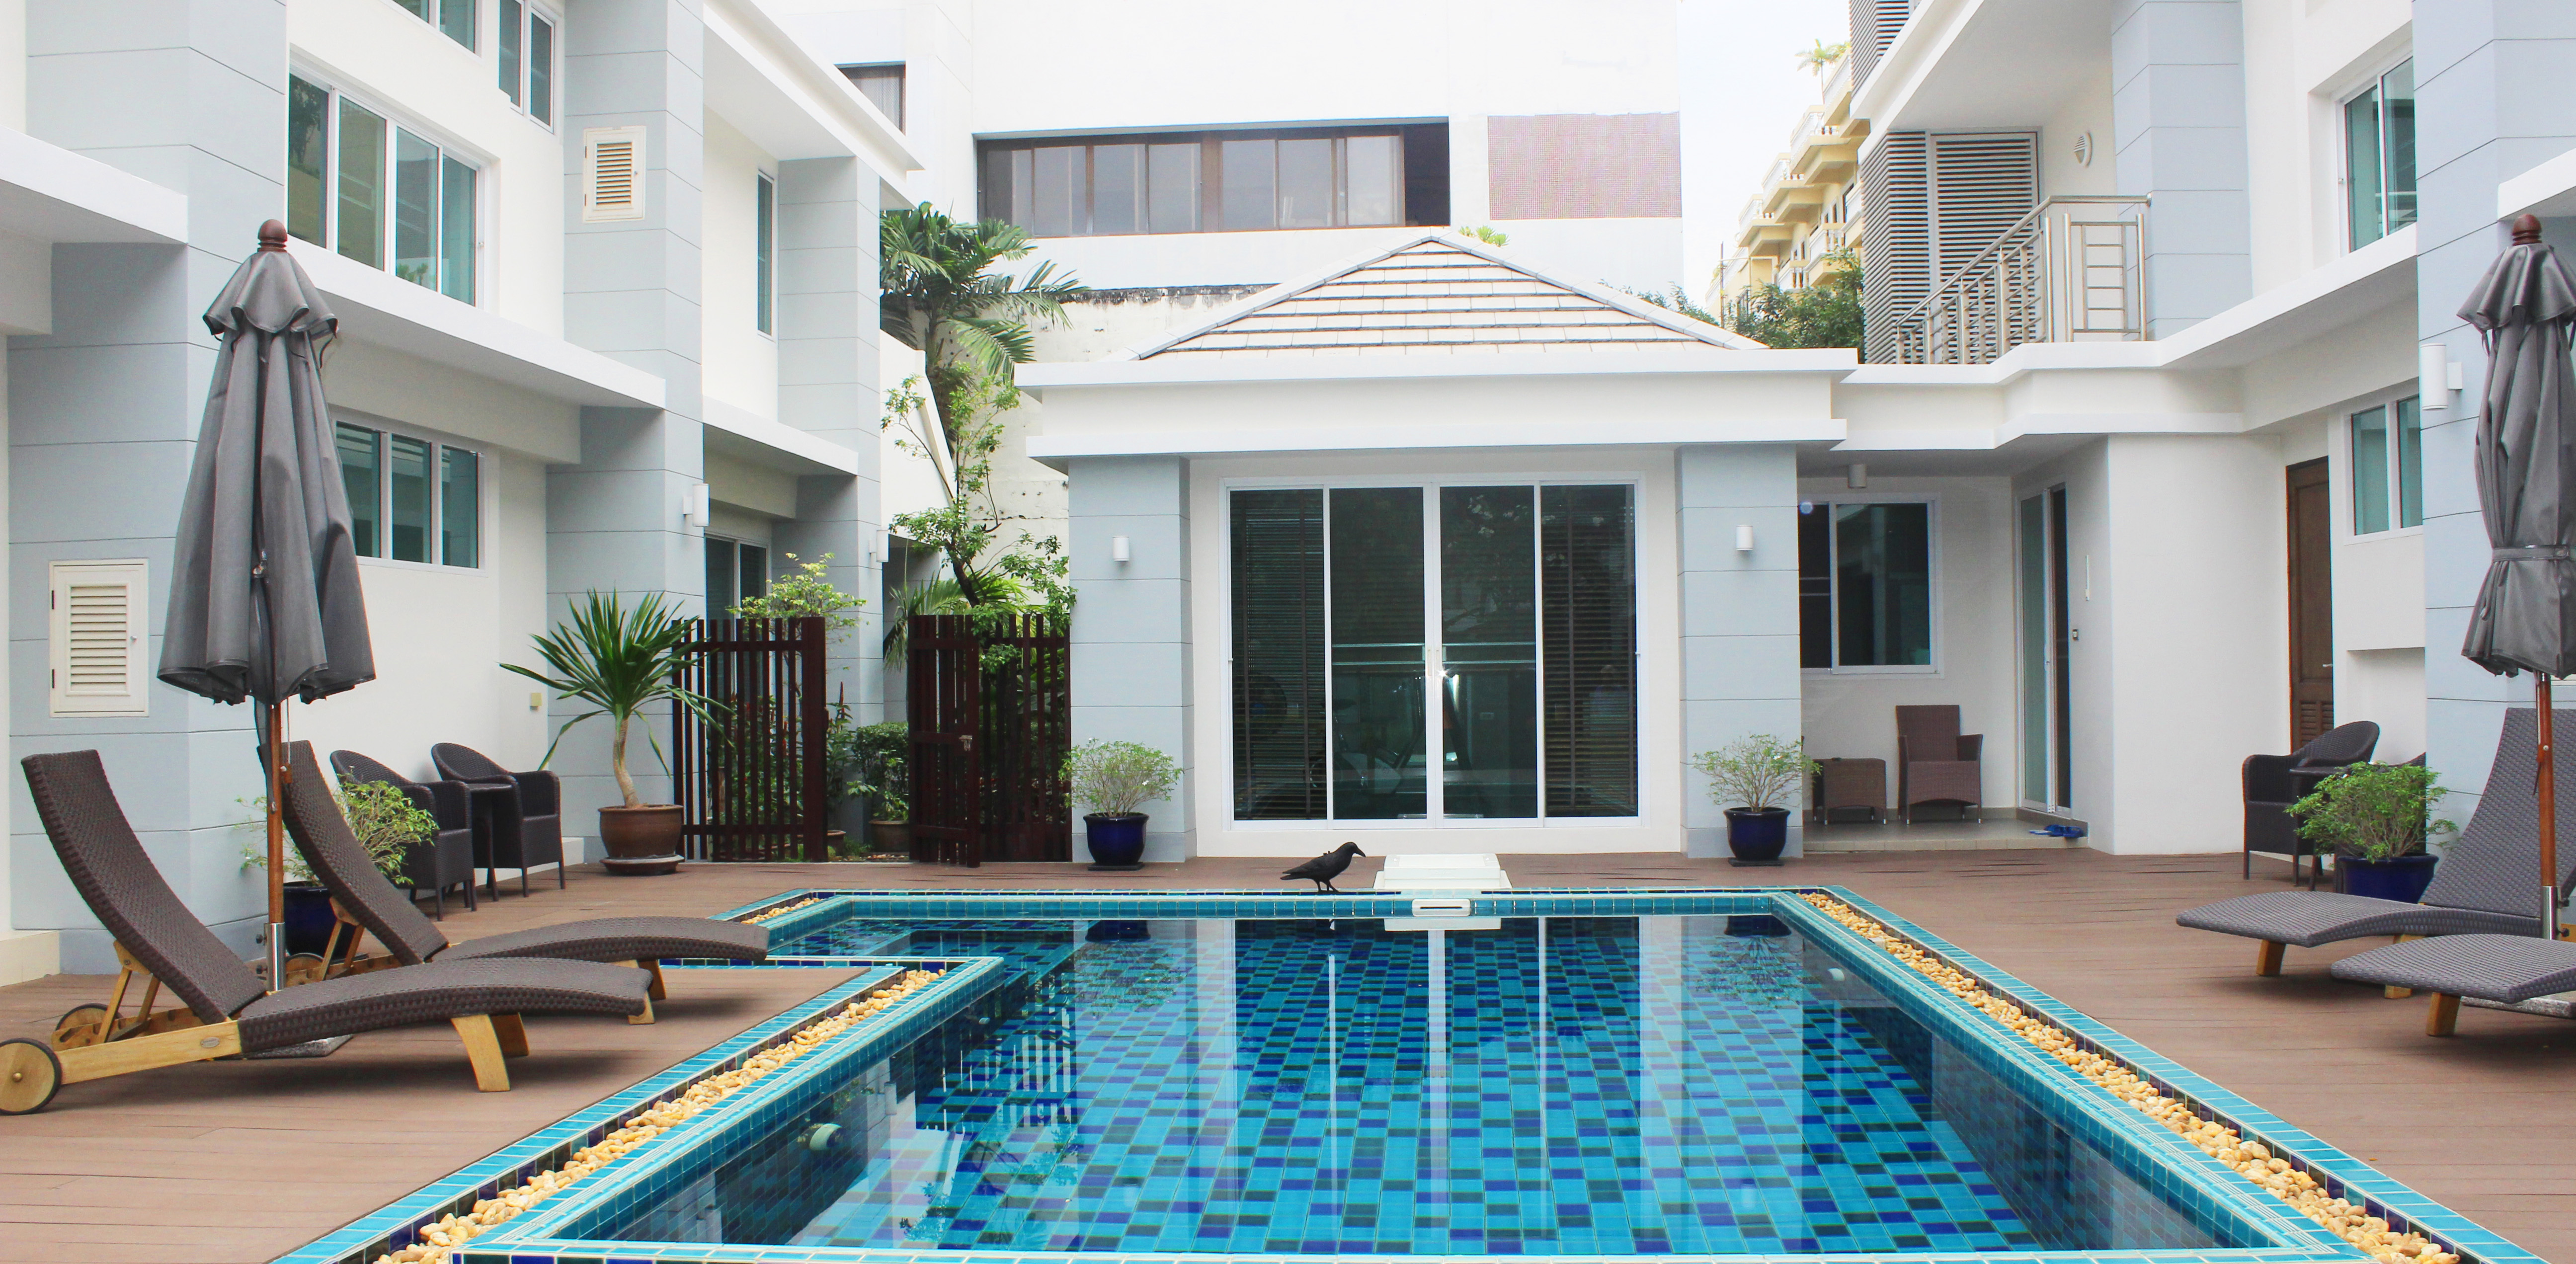 5 Br Spacious House Near BTS Phrom Phong Ready to more in.